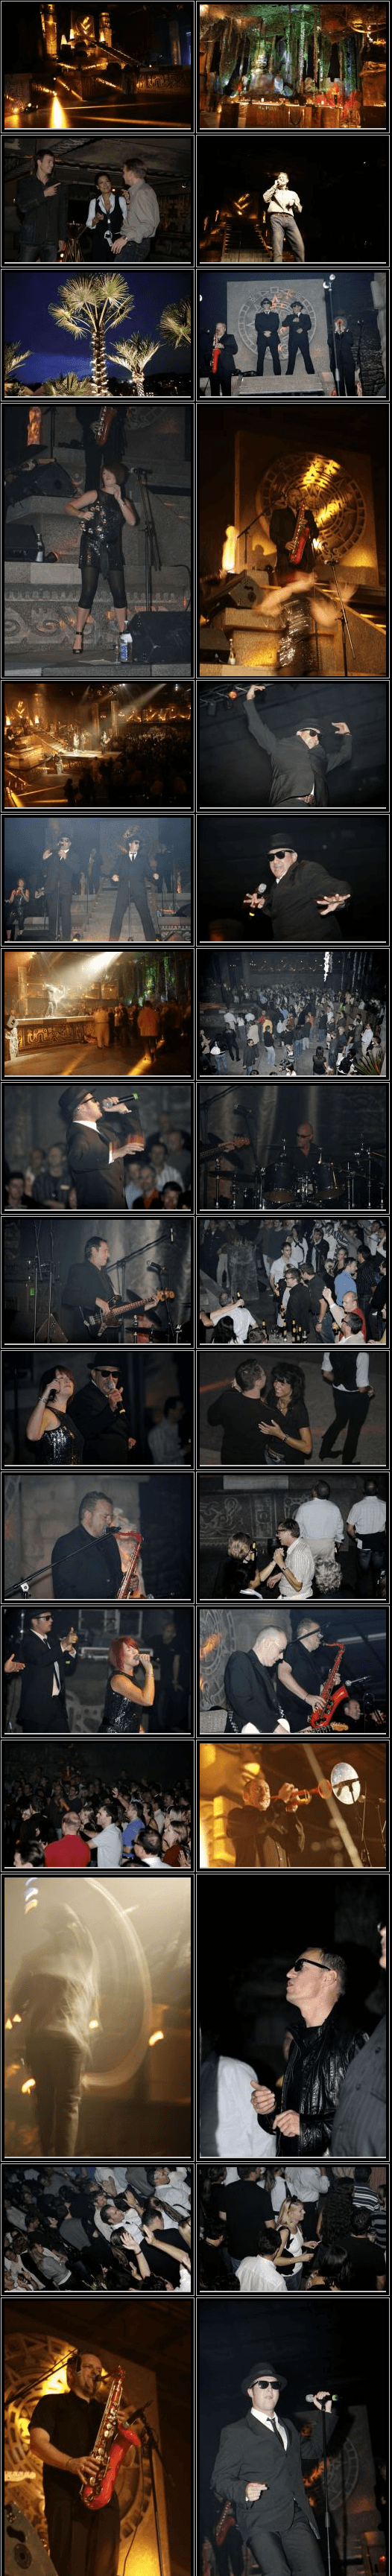 Credit Suisse Summernight-Party